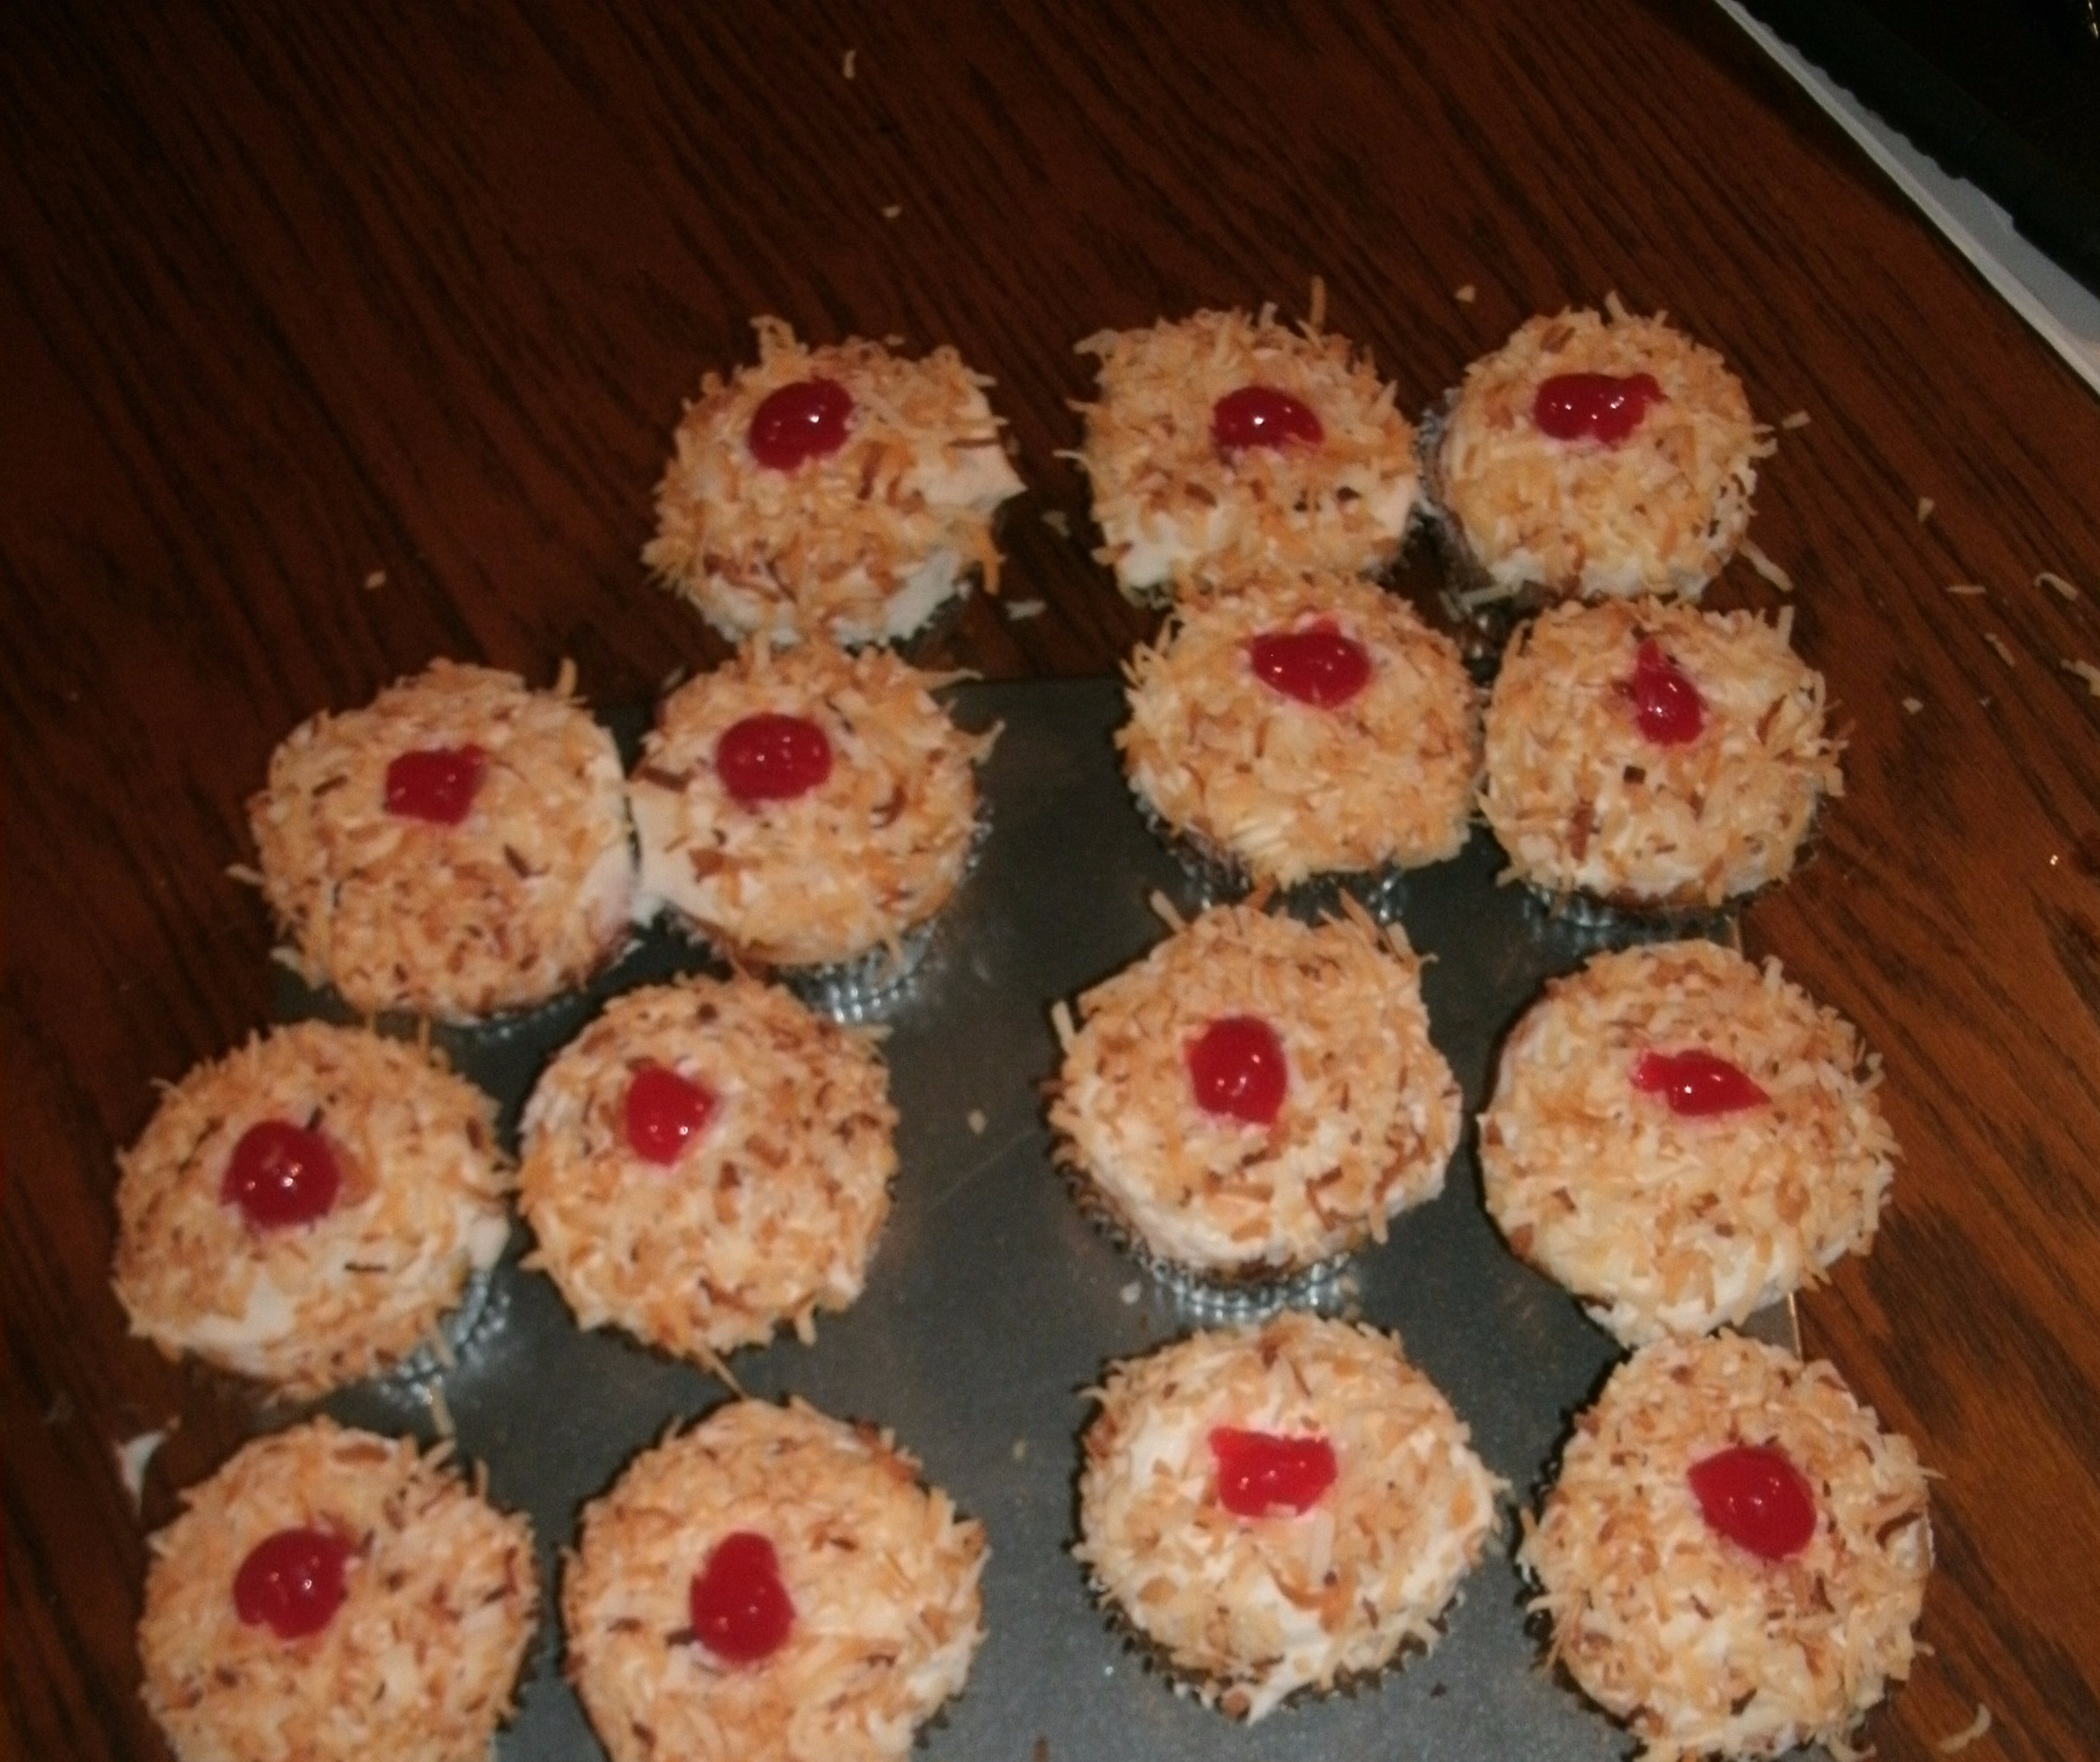 Coconut cupcakes with Almond buttercream icing and toasted coconut topping.